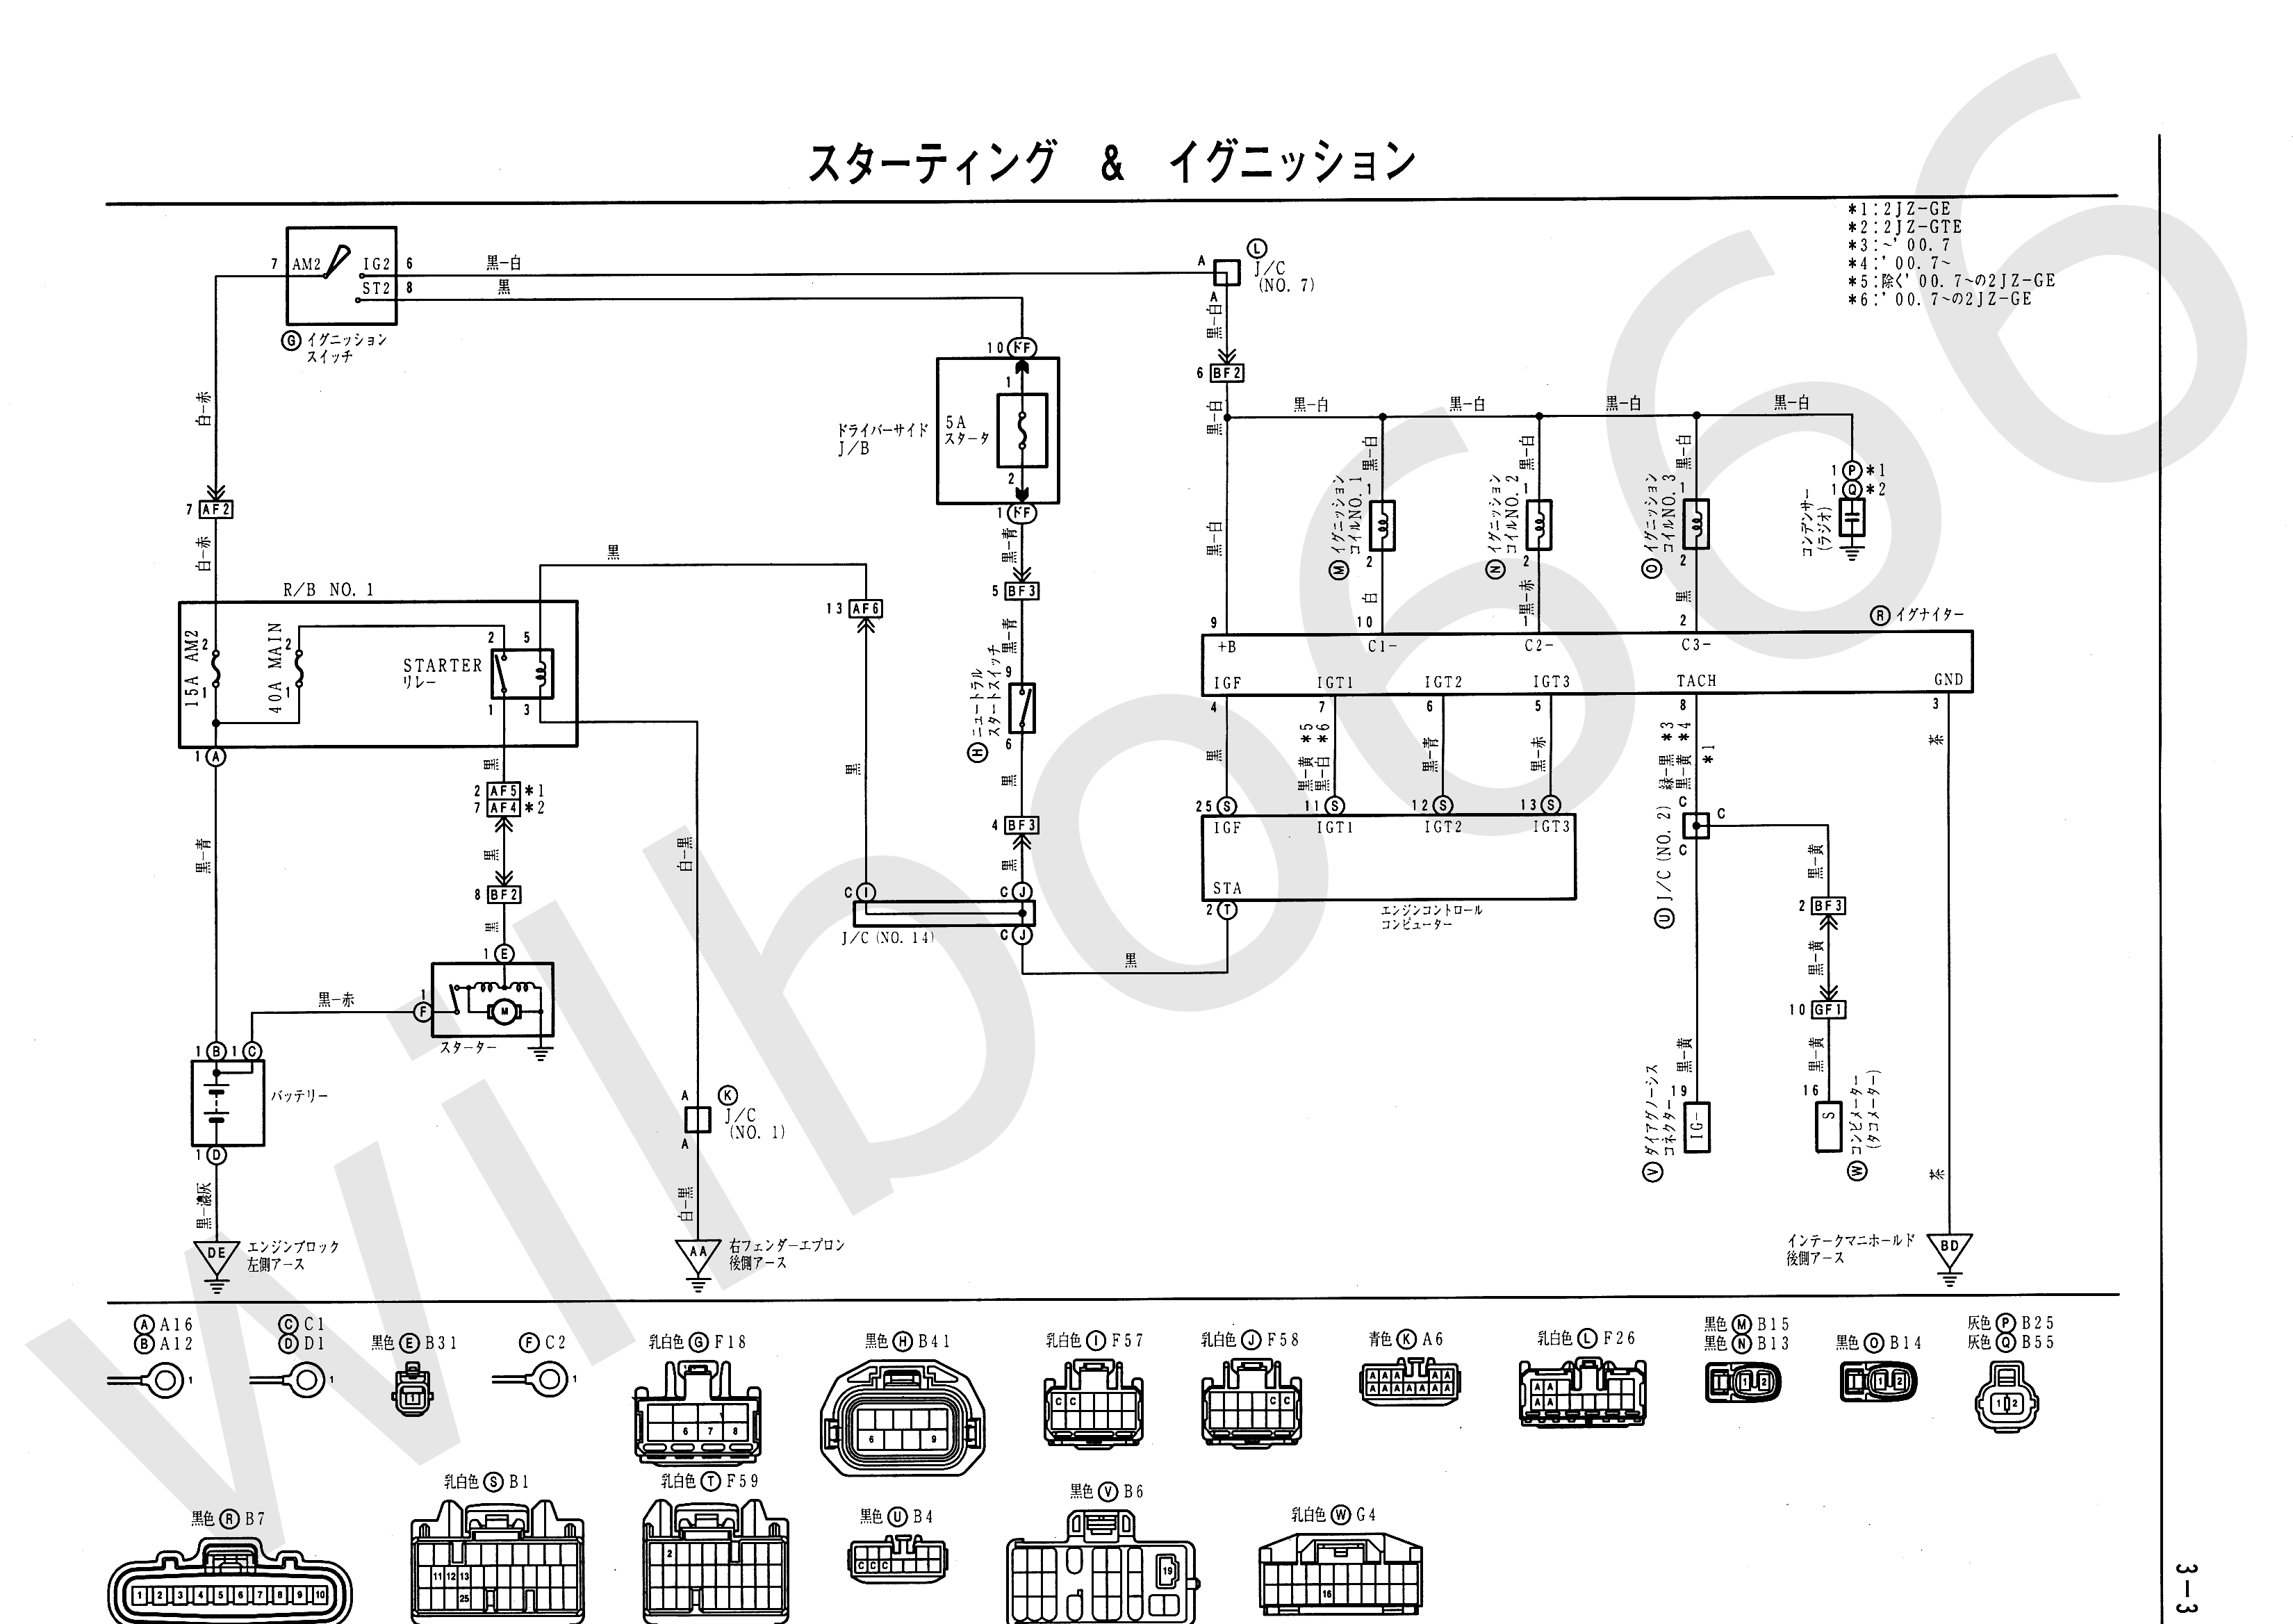 JZS161 Electrical Wiring Diagram 6748505 3 3 15 [ 1jz vvti wiring diagram pdf ] the nightmare aristo wiring jzx90 wiring diagram at bayanpartner.co